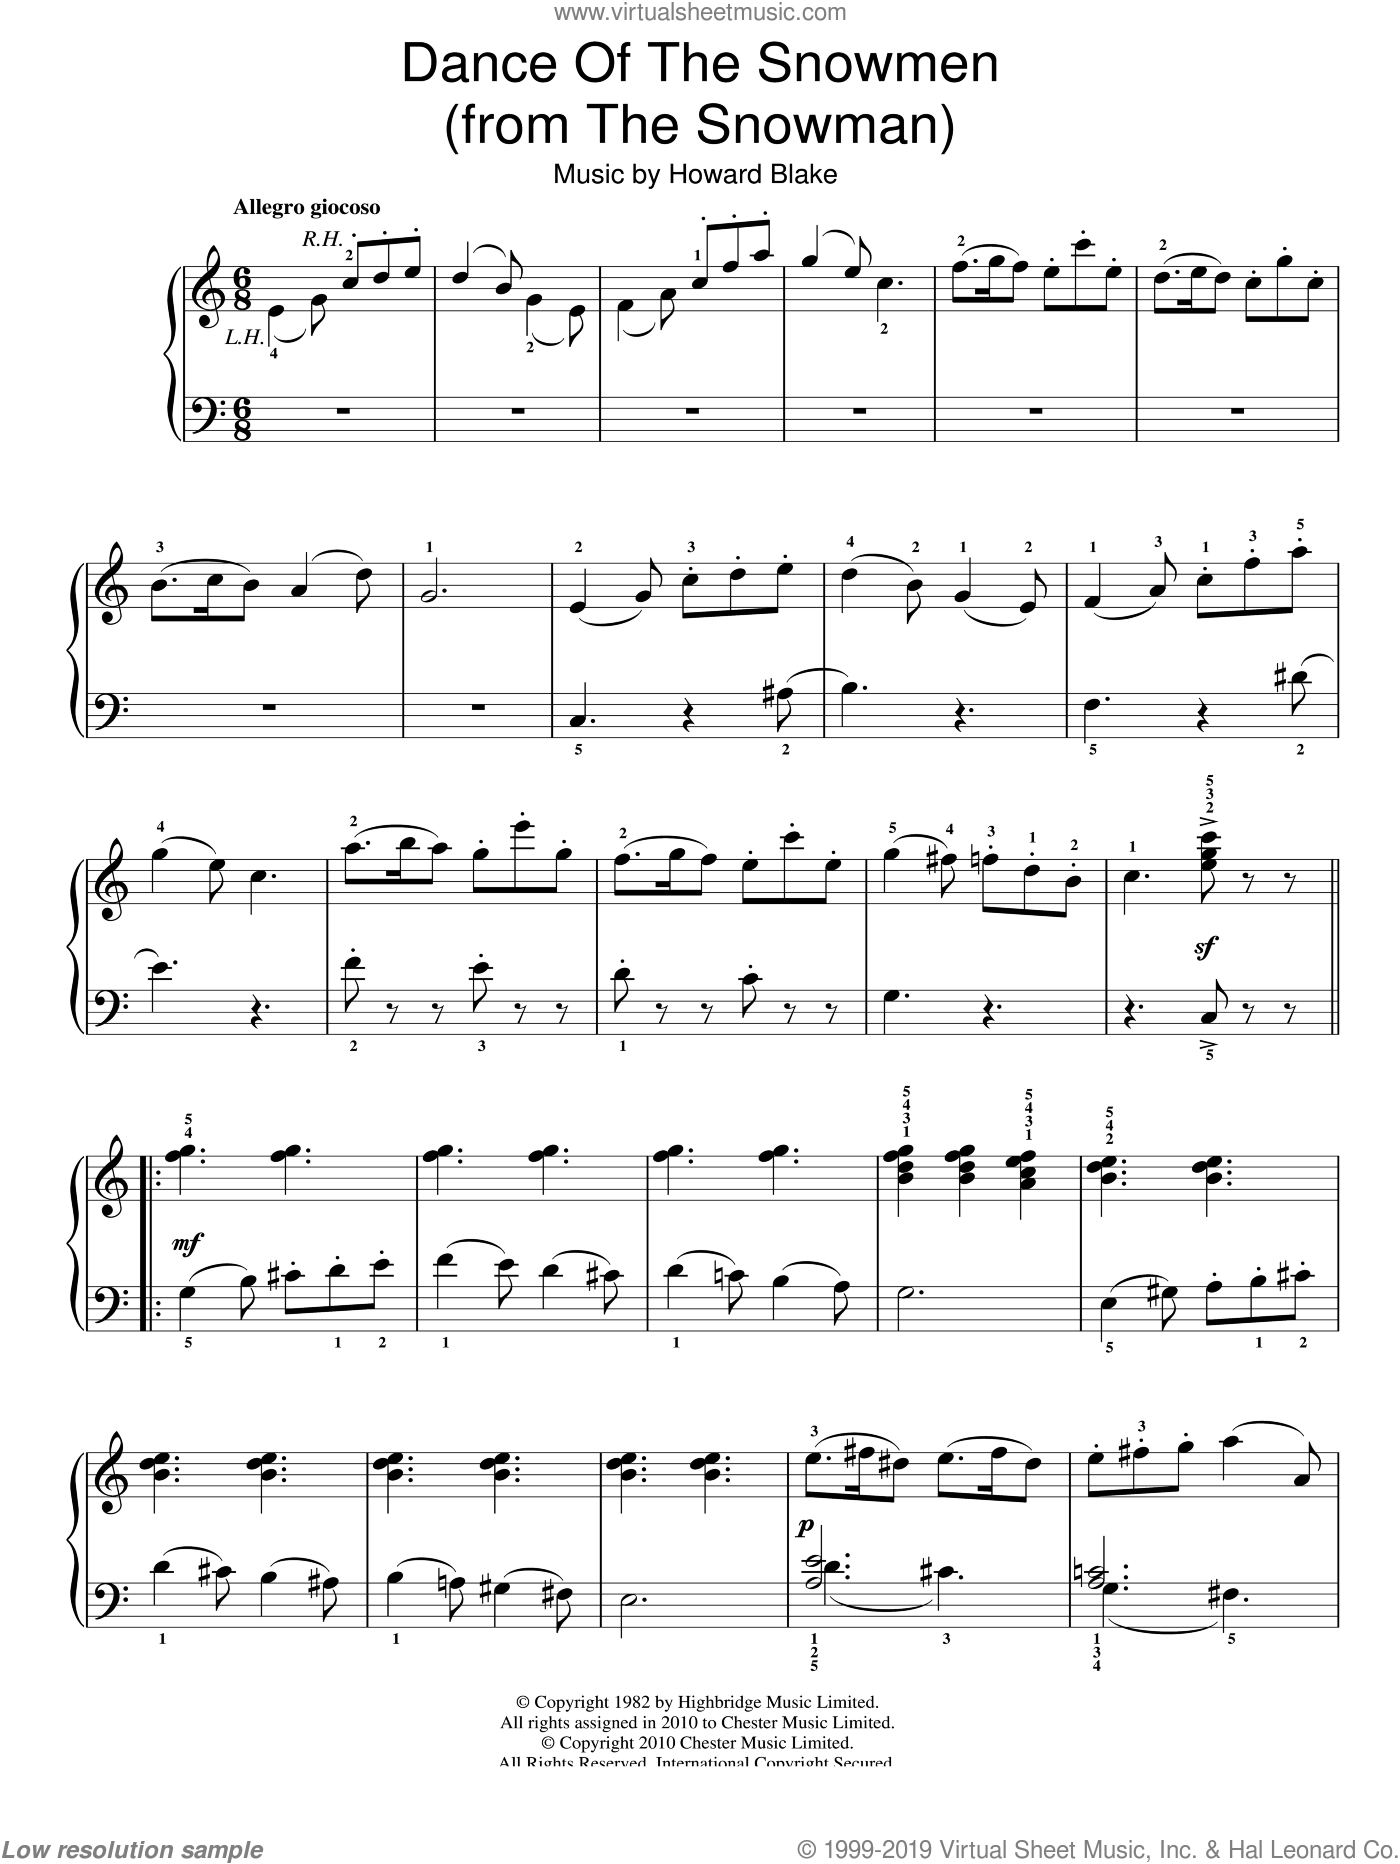 Dance Of The Snowmen sheet music for piano solo by Howard Blake, easy piano. Score Image Preview.